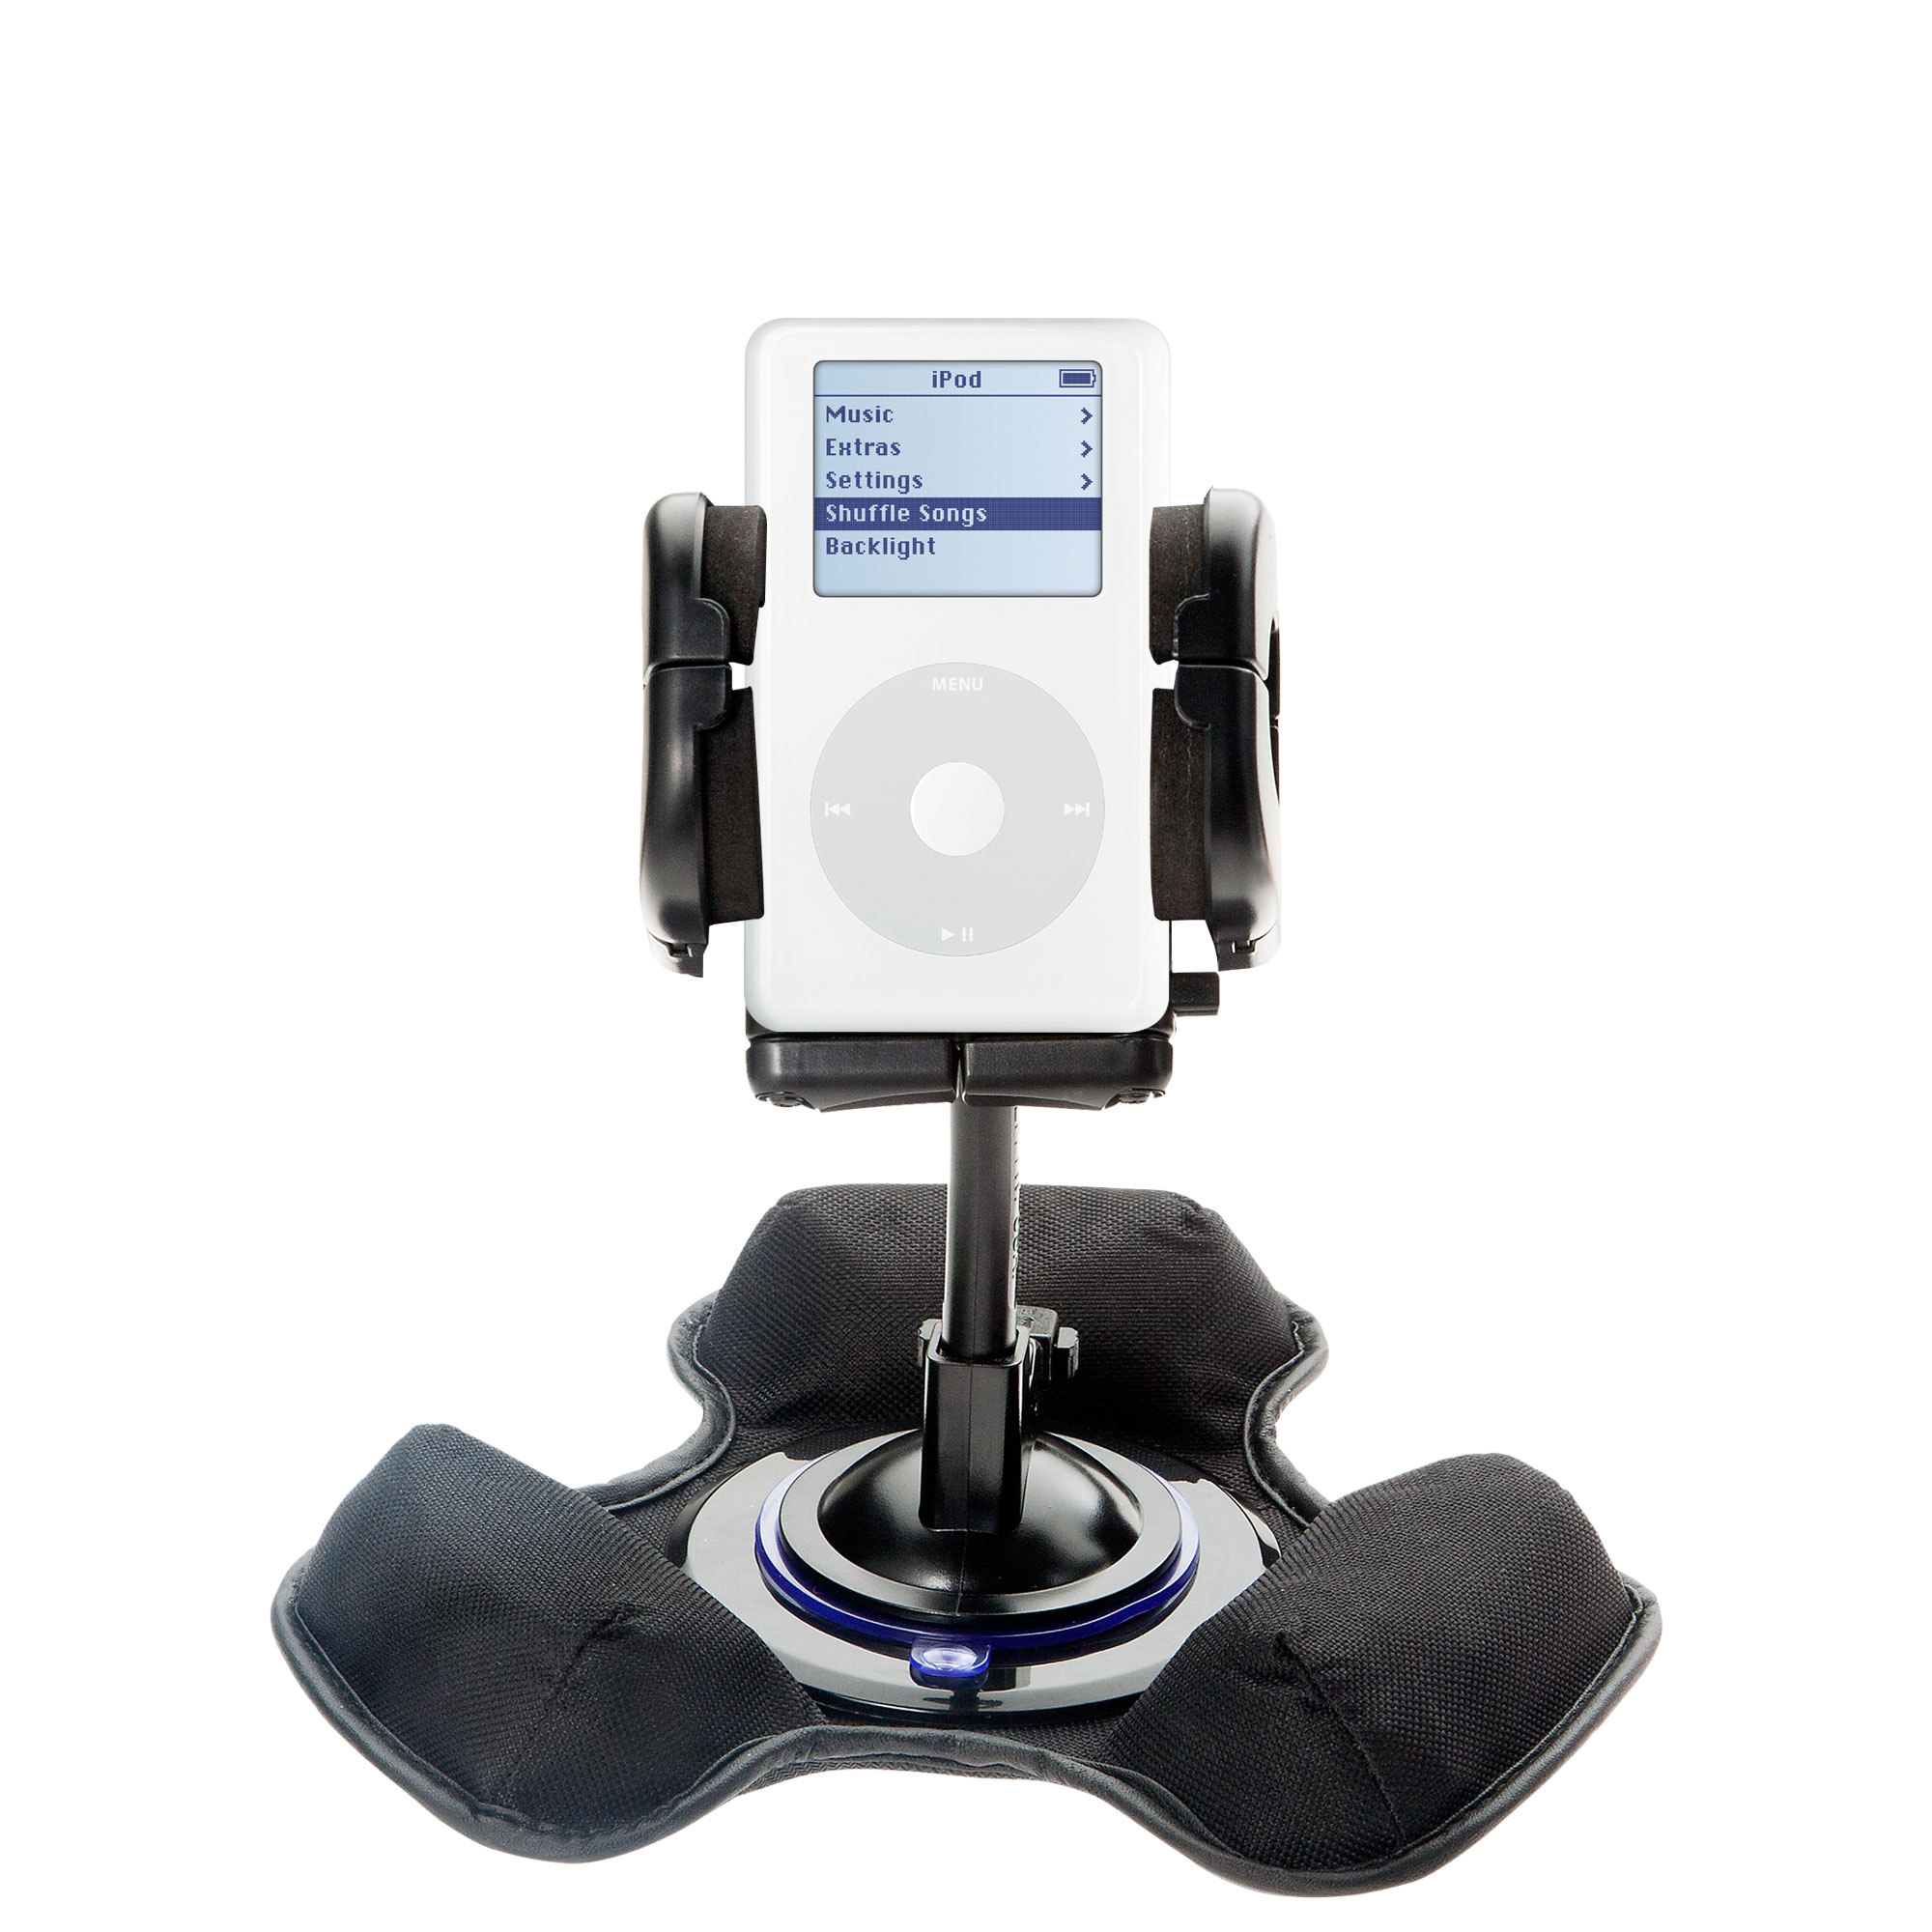 Dash and Windshield Holder compatible with the Apple iPod 4G (20GB)